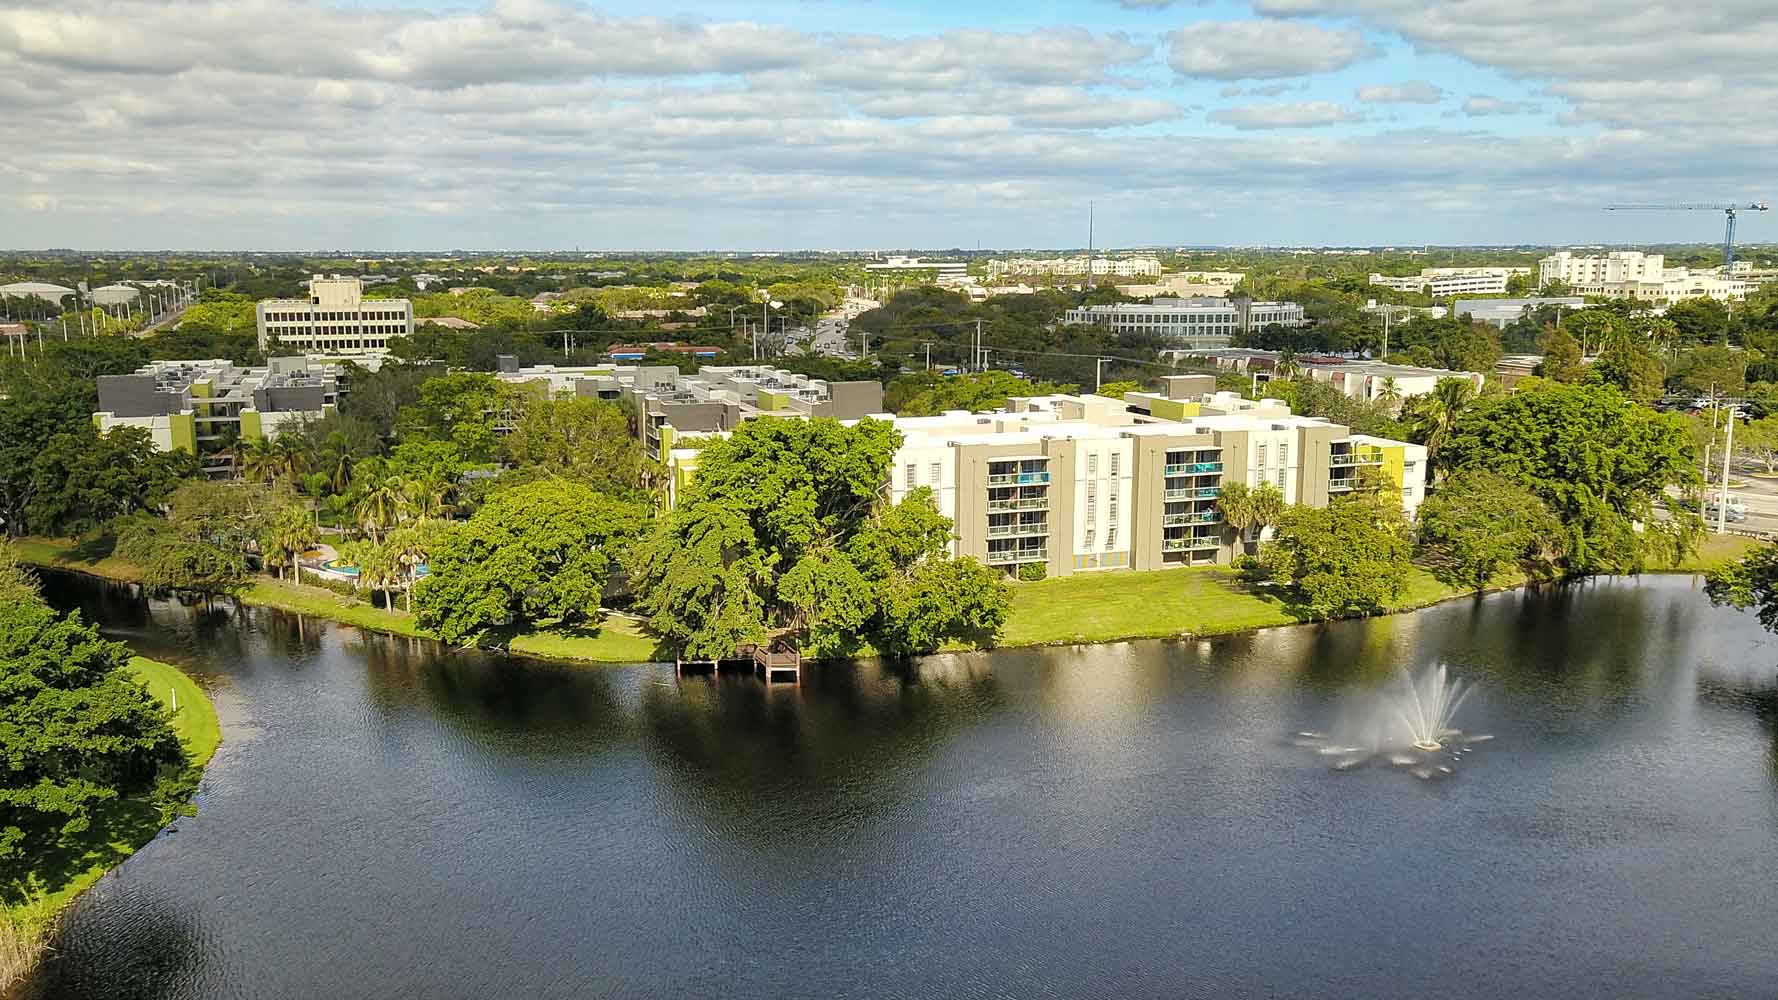 Waterfront Apartment Community at Nottingham Pine Apartments in Plantation, FL